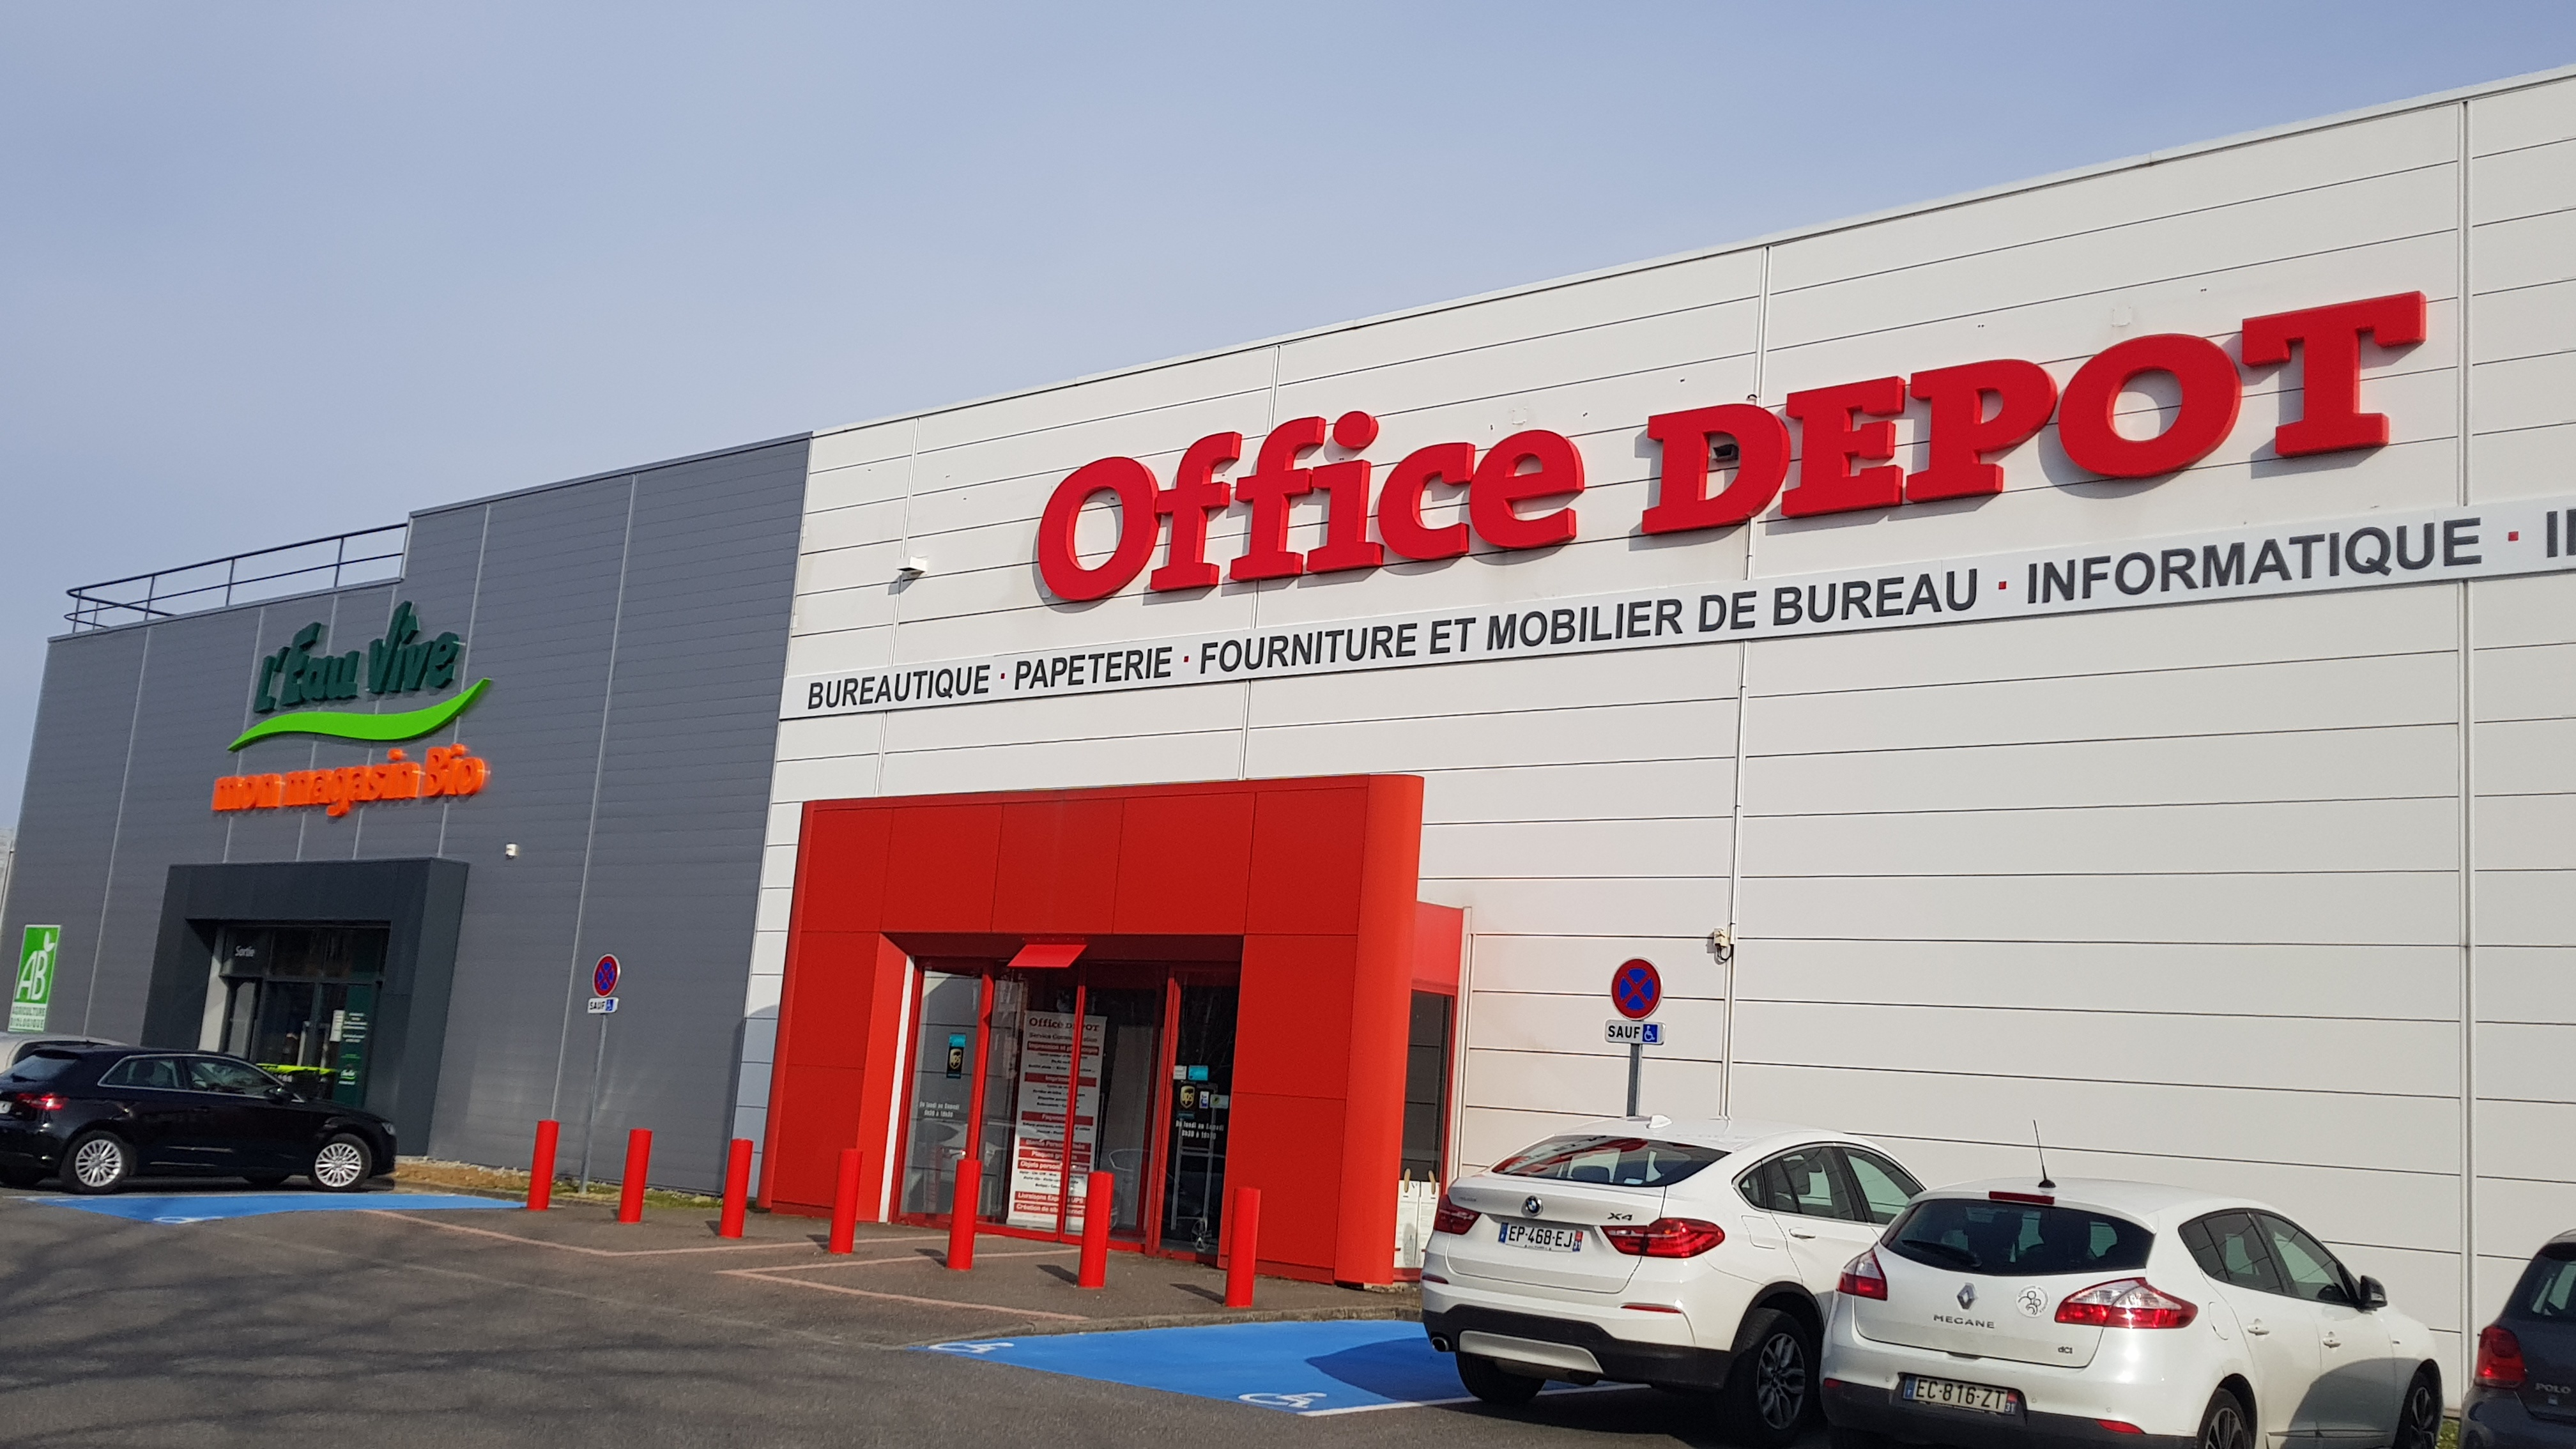 Magasin office depot toulouse labège : fournitures mobiliers de